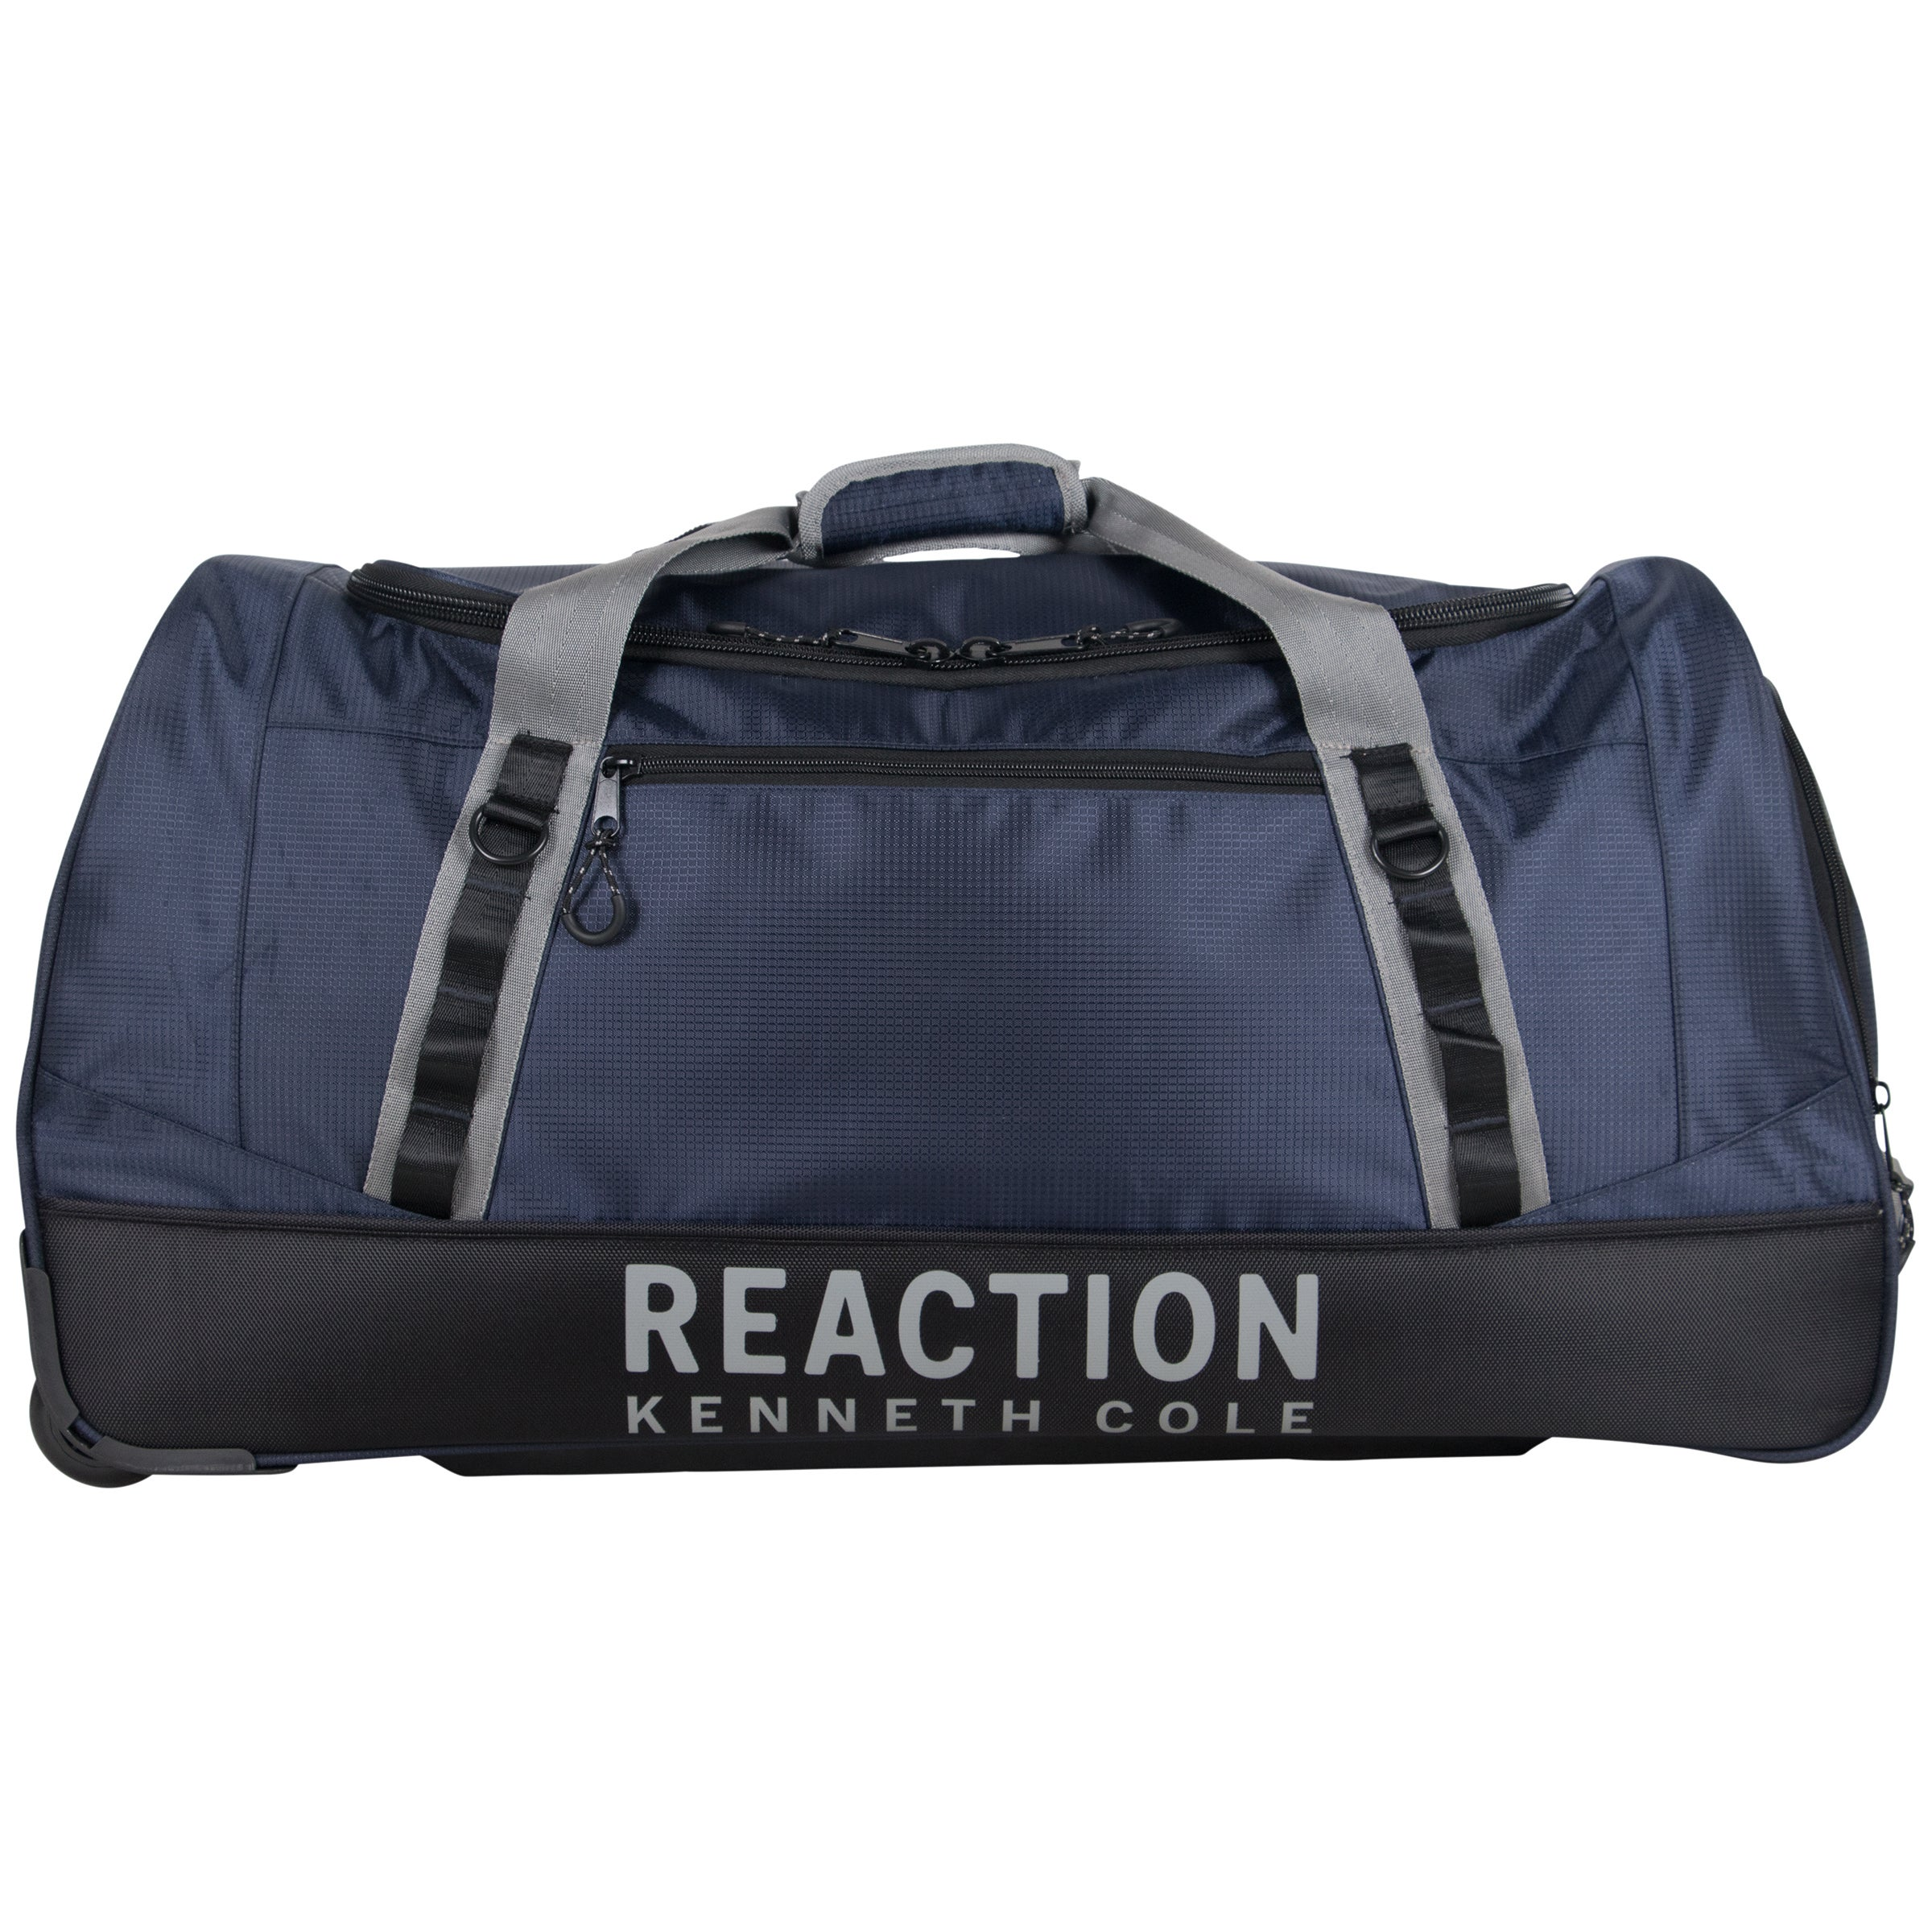 2e2d72e50713 Shop Kenneth Cole Reaction 30-inch Lightweight Large Capacity 2-Wheel  Rolling Duffel Bag - Free Shipping Today - Overstock - 20374970